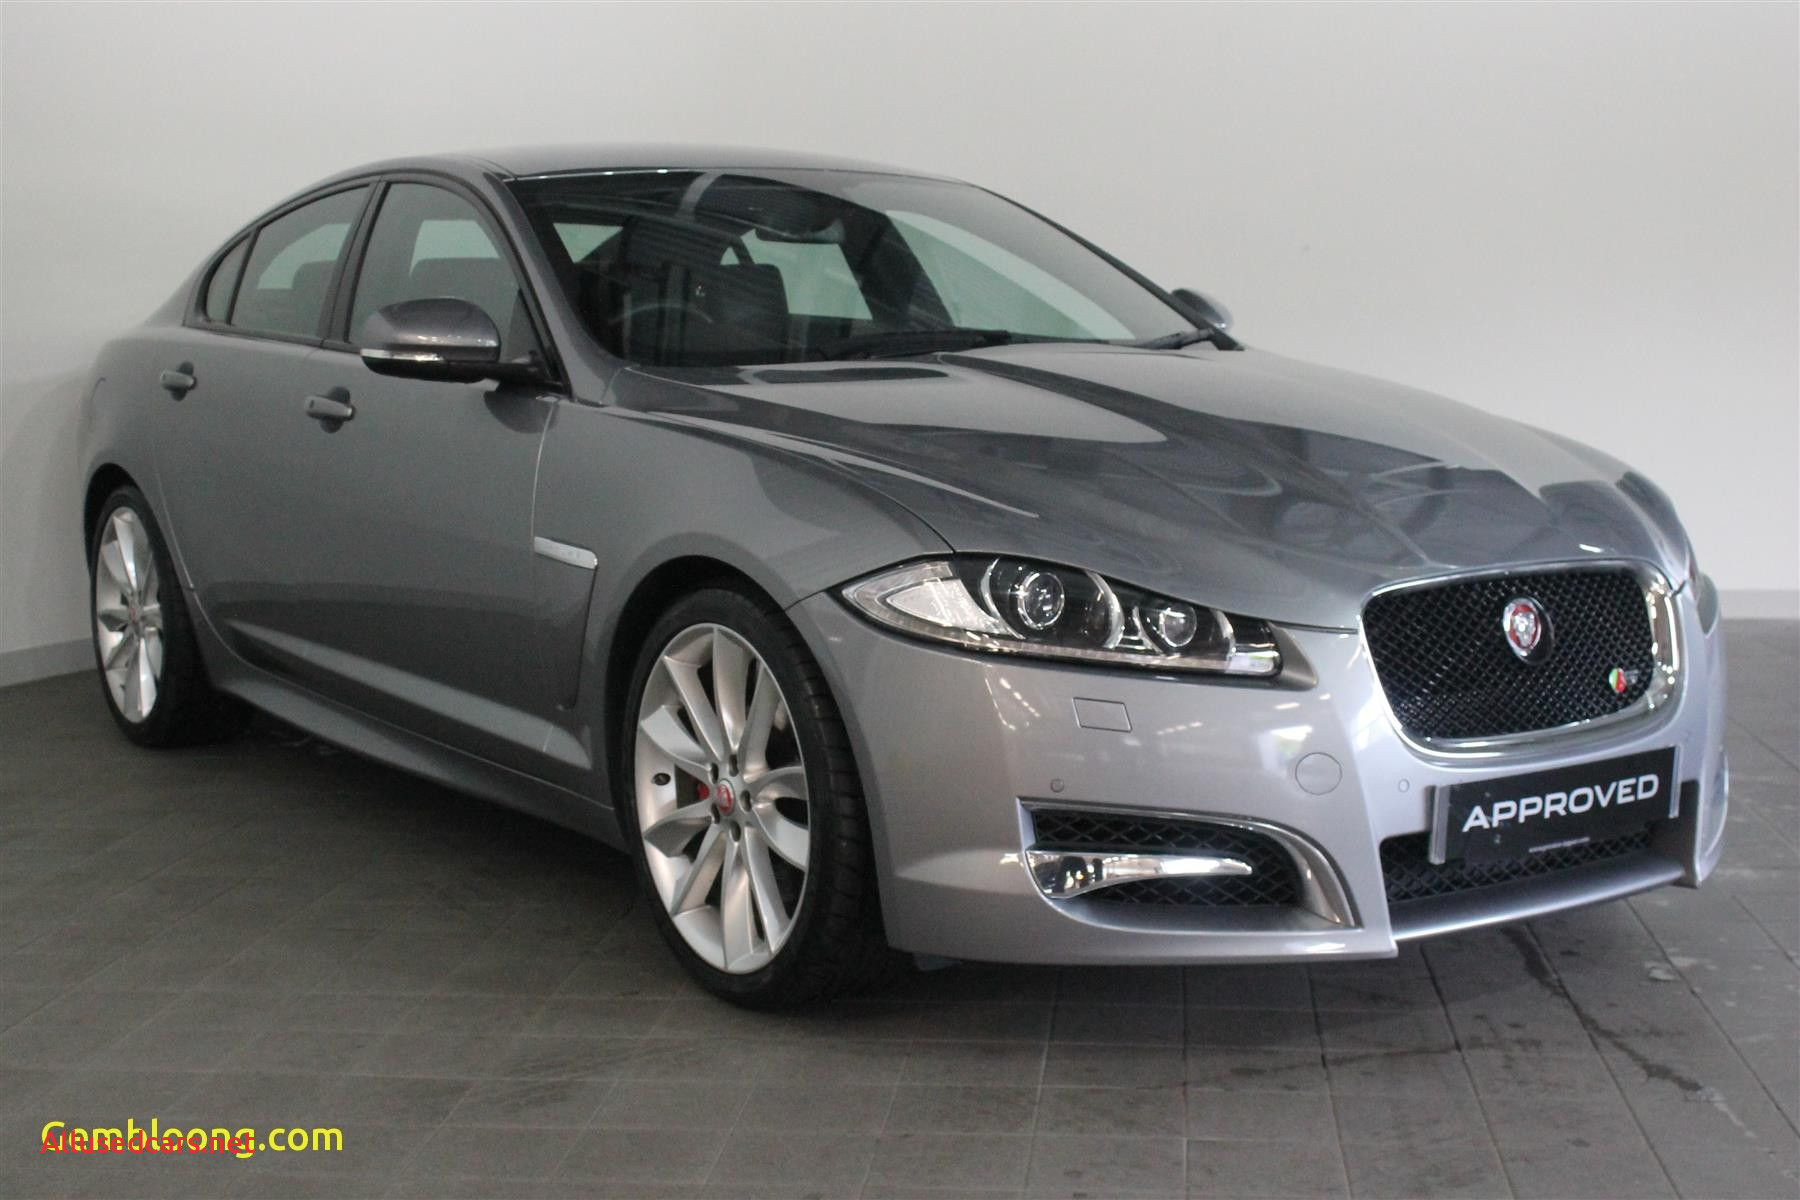 Used Vehicle Cargurus Best Of Lovely Used V6 Cars for Sale Near Me Wel E for You to the